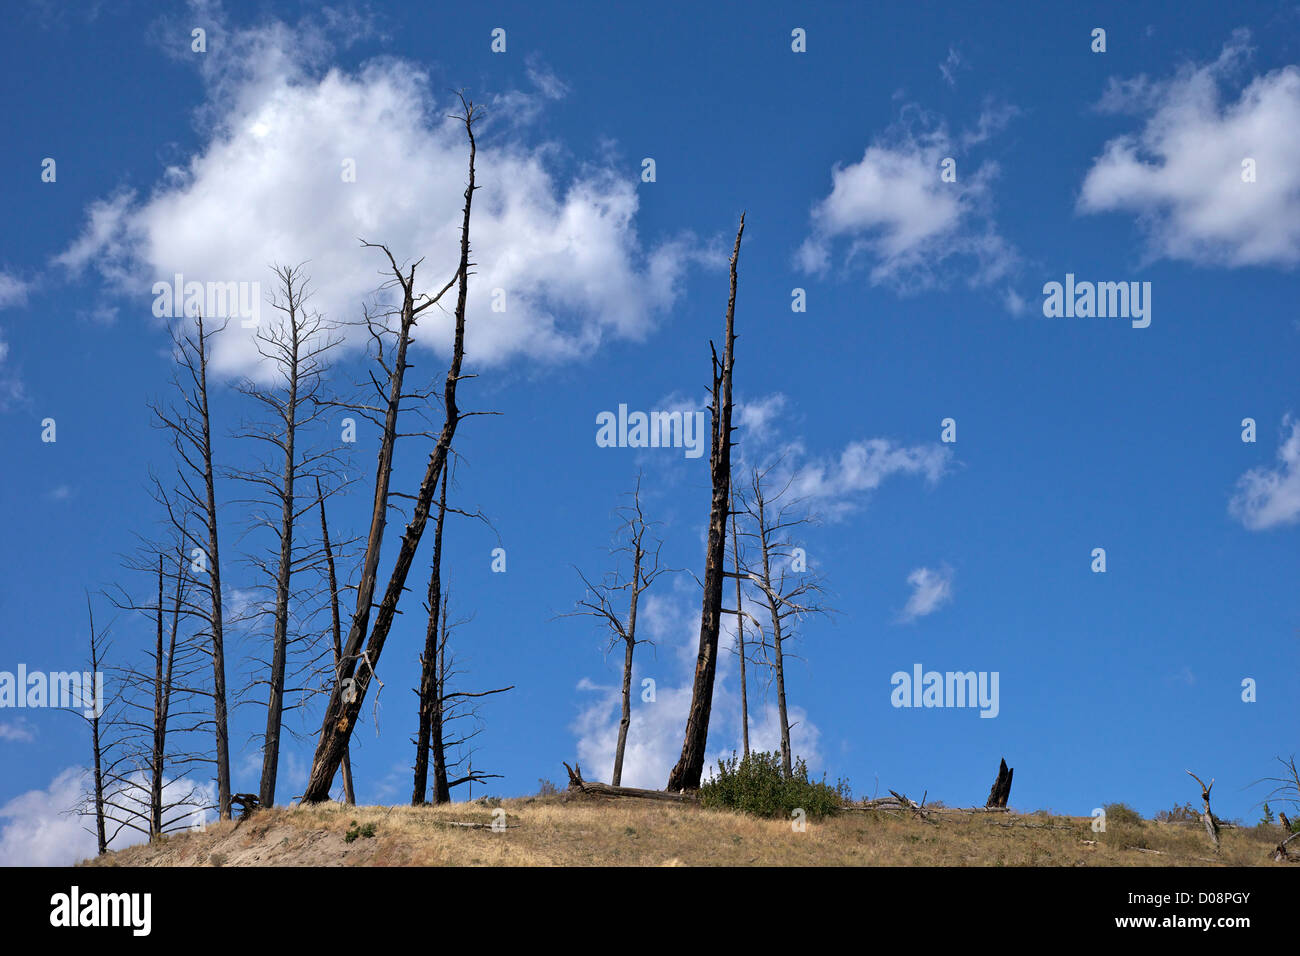 Dead trunks of Lodgepole Pines, Yellowstone National Park, Wyoming, USA - Stock Image